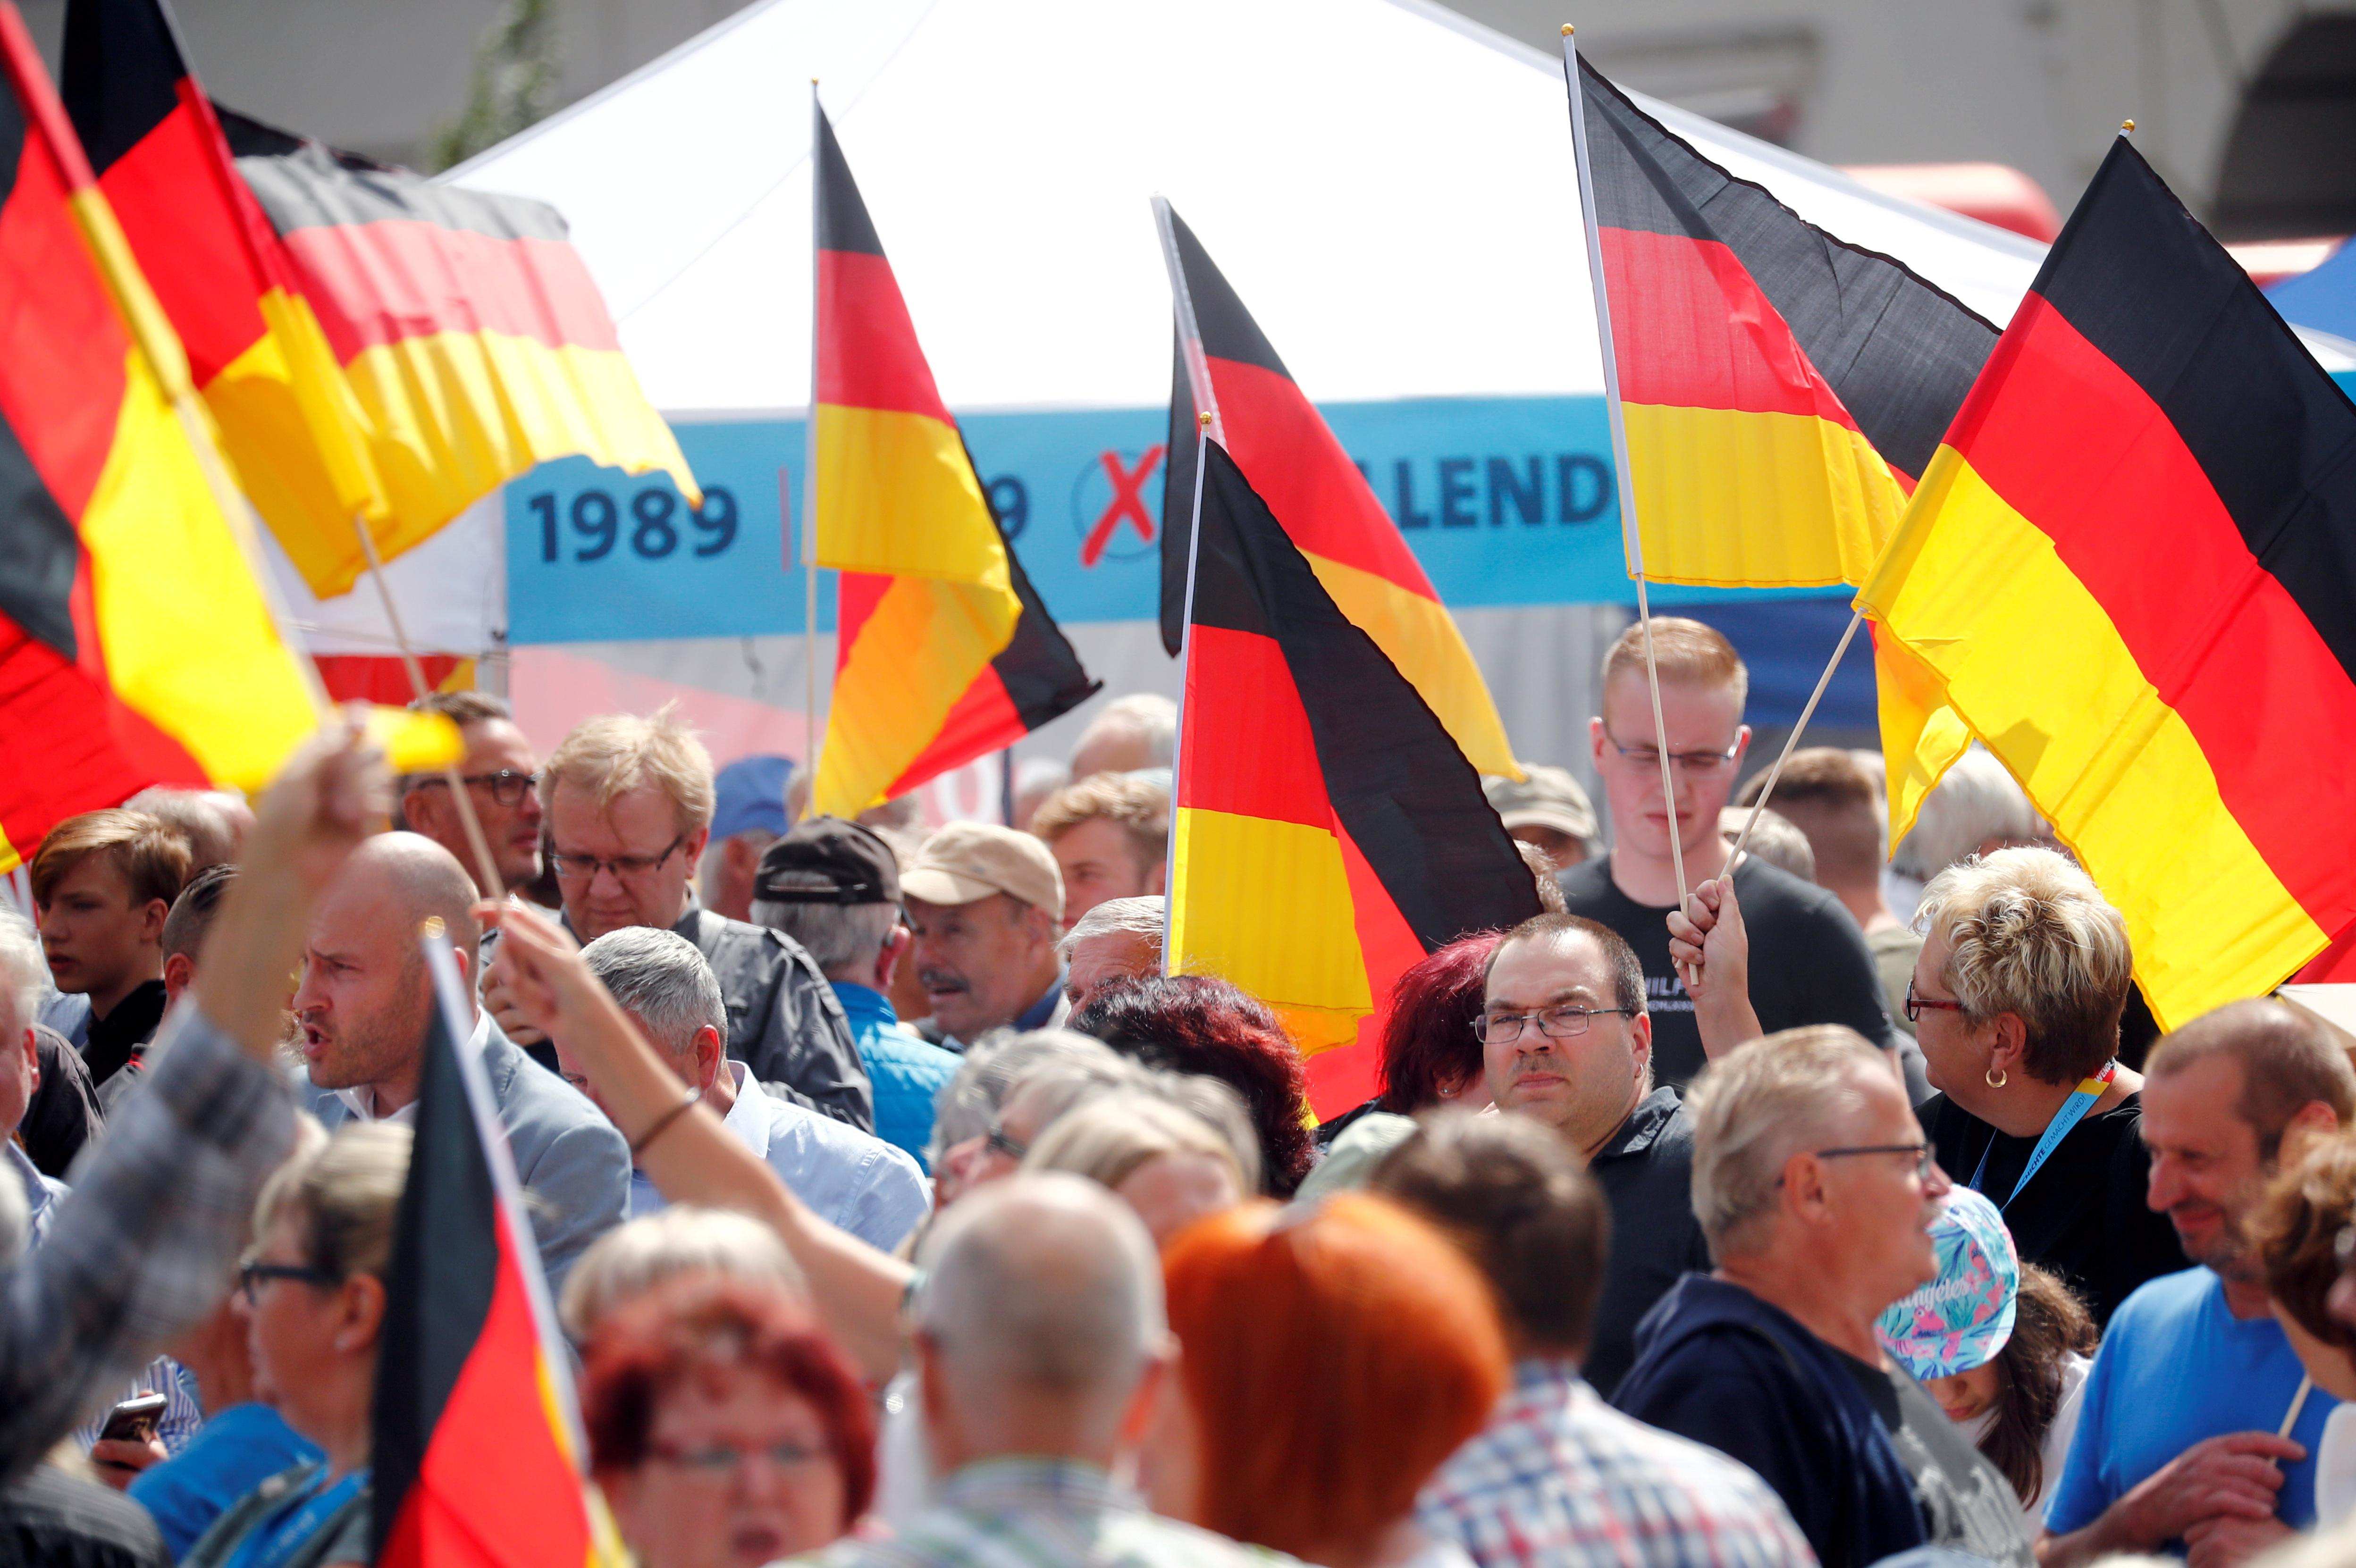 VW says arena must cover German carmaker's name during far-right event